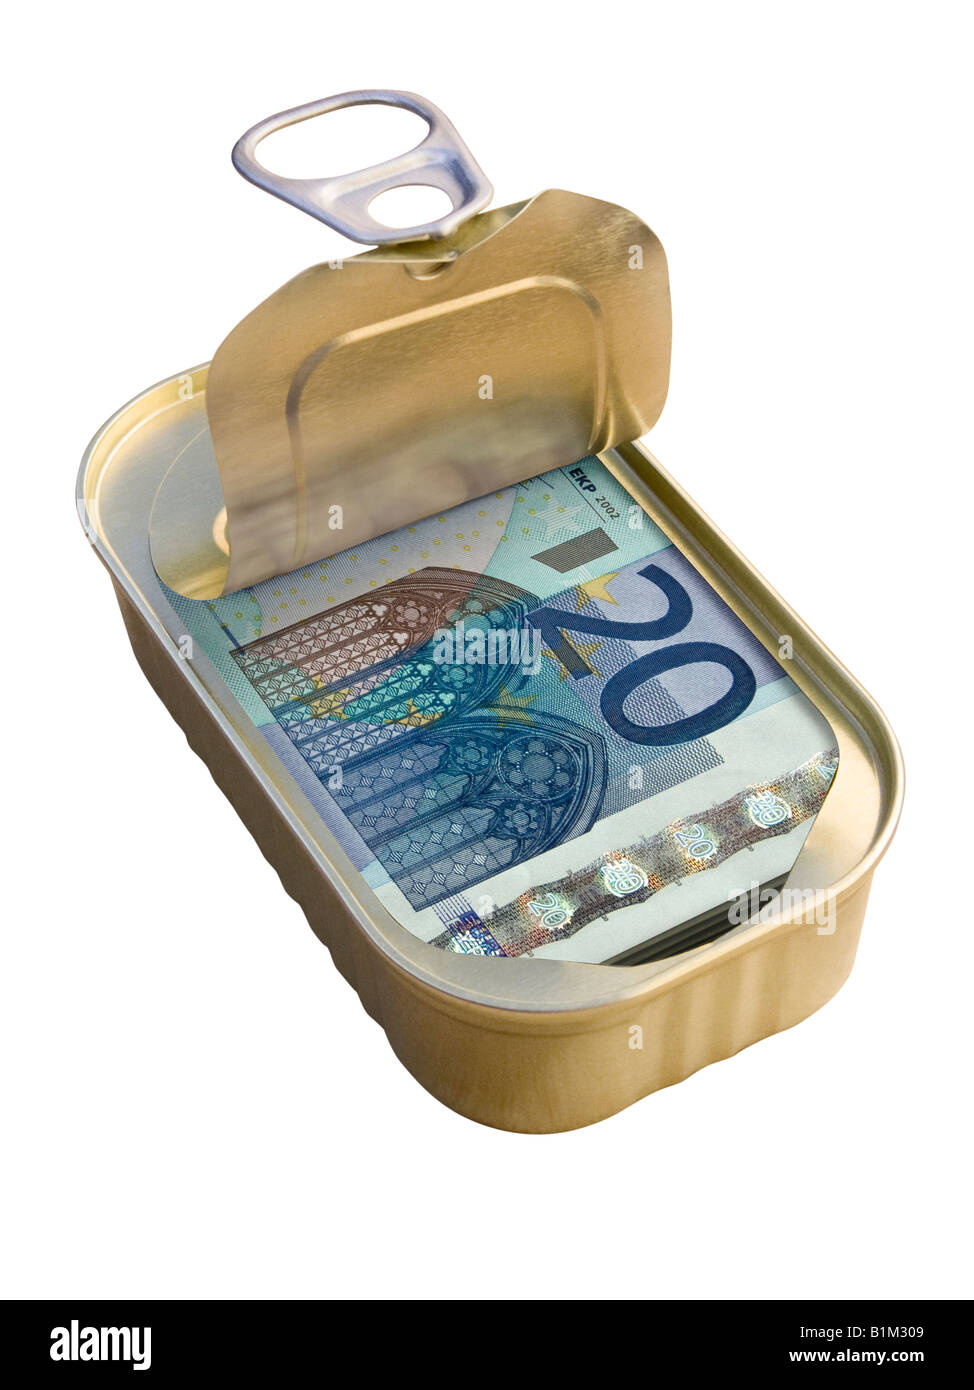 Ring Pull Tin containing 20 Euro notes on white background - Concept Stock Photo